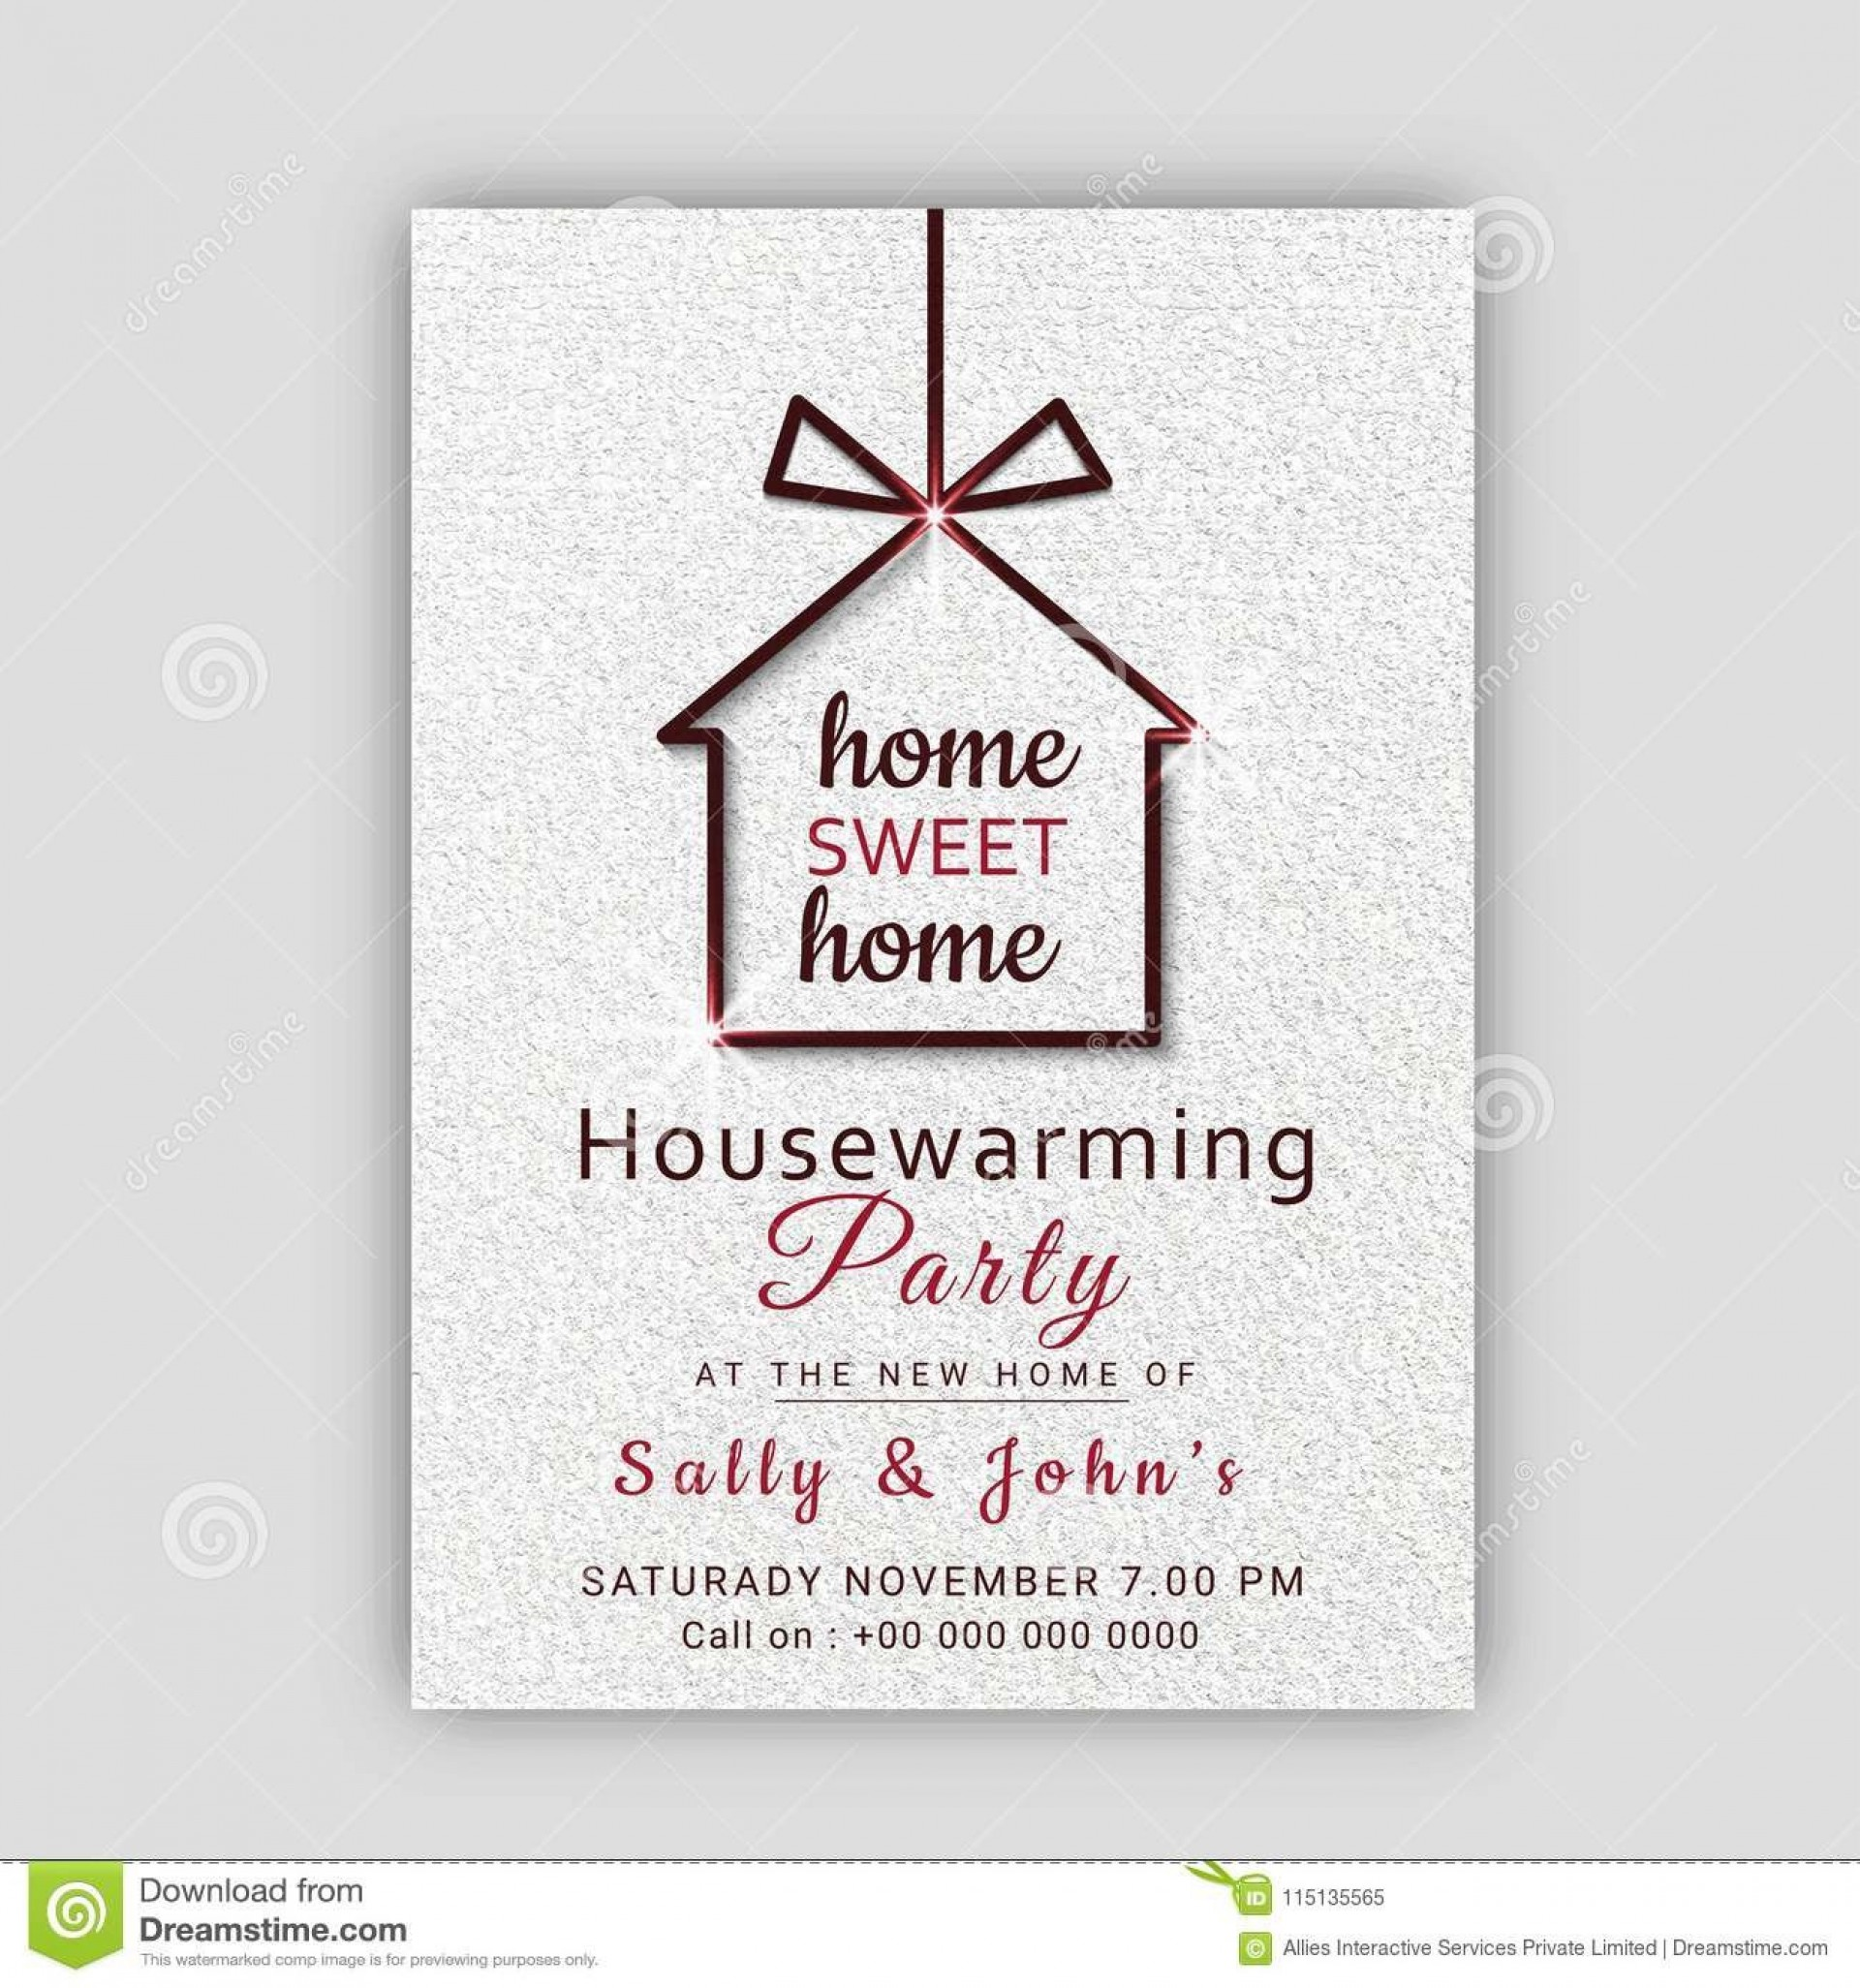 House Warming Party Invitation Template ~ Addictionary